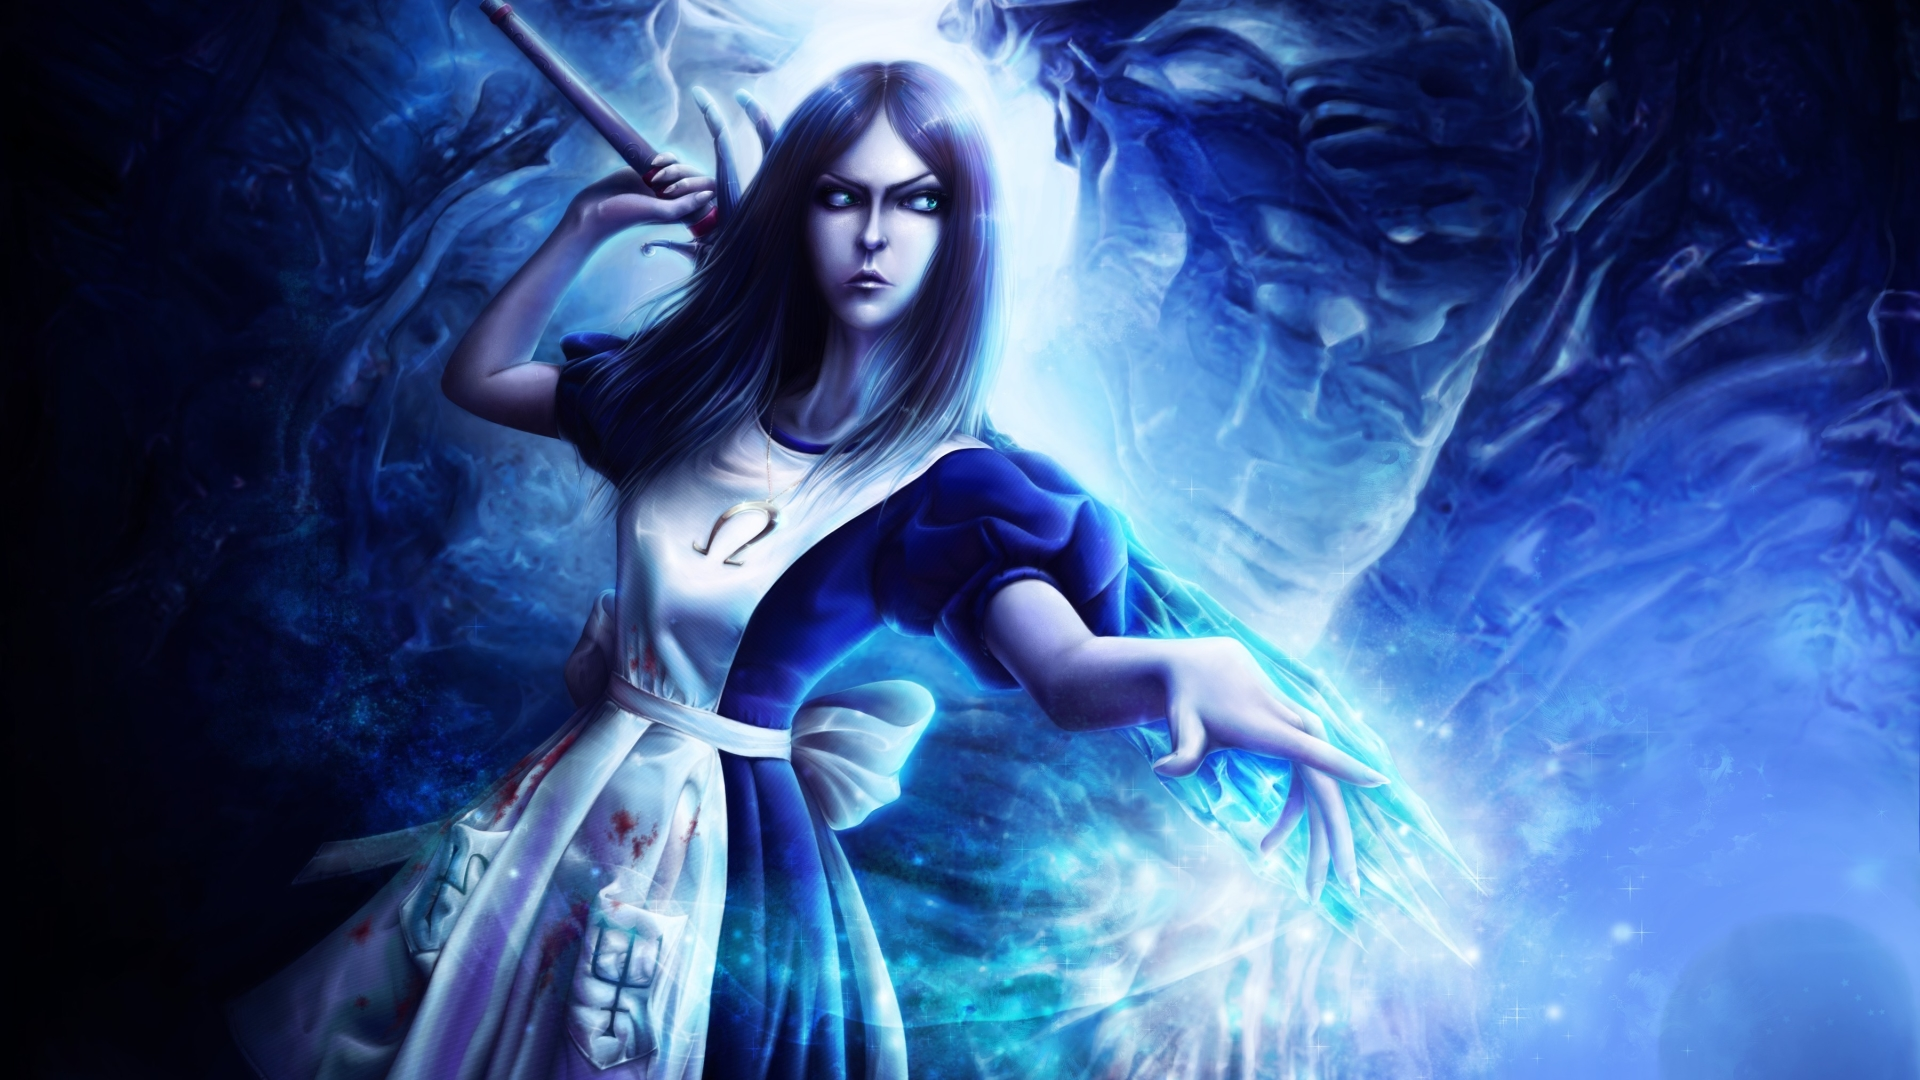 1920x1080 Alice Madness Returns Wand Crystal 1080p Laptop Full